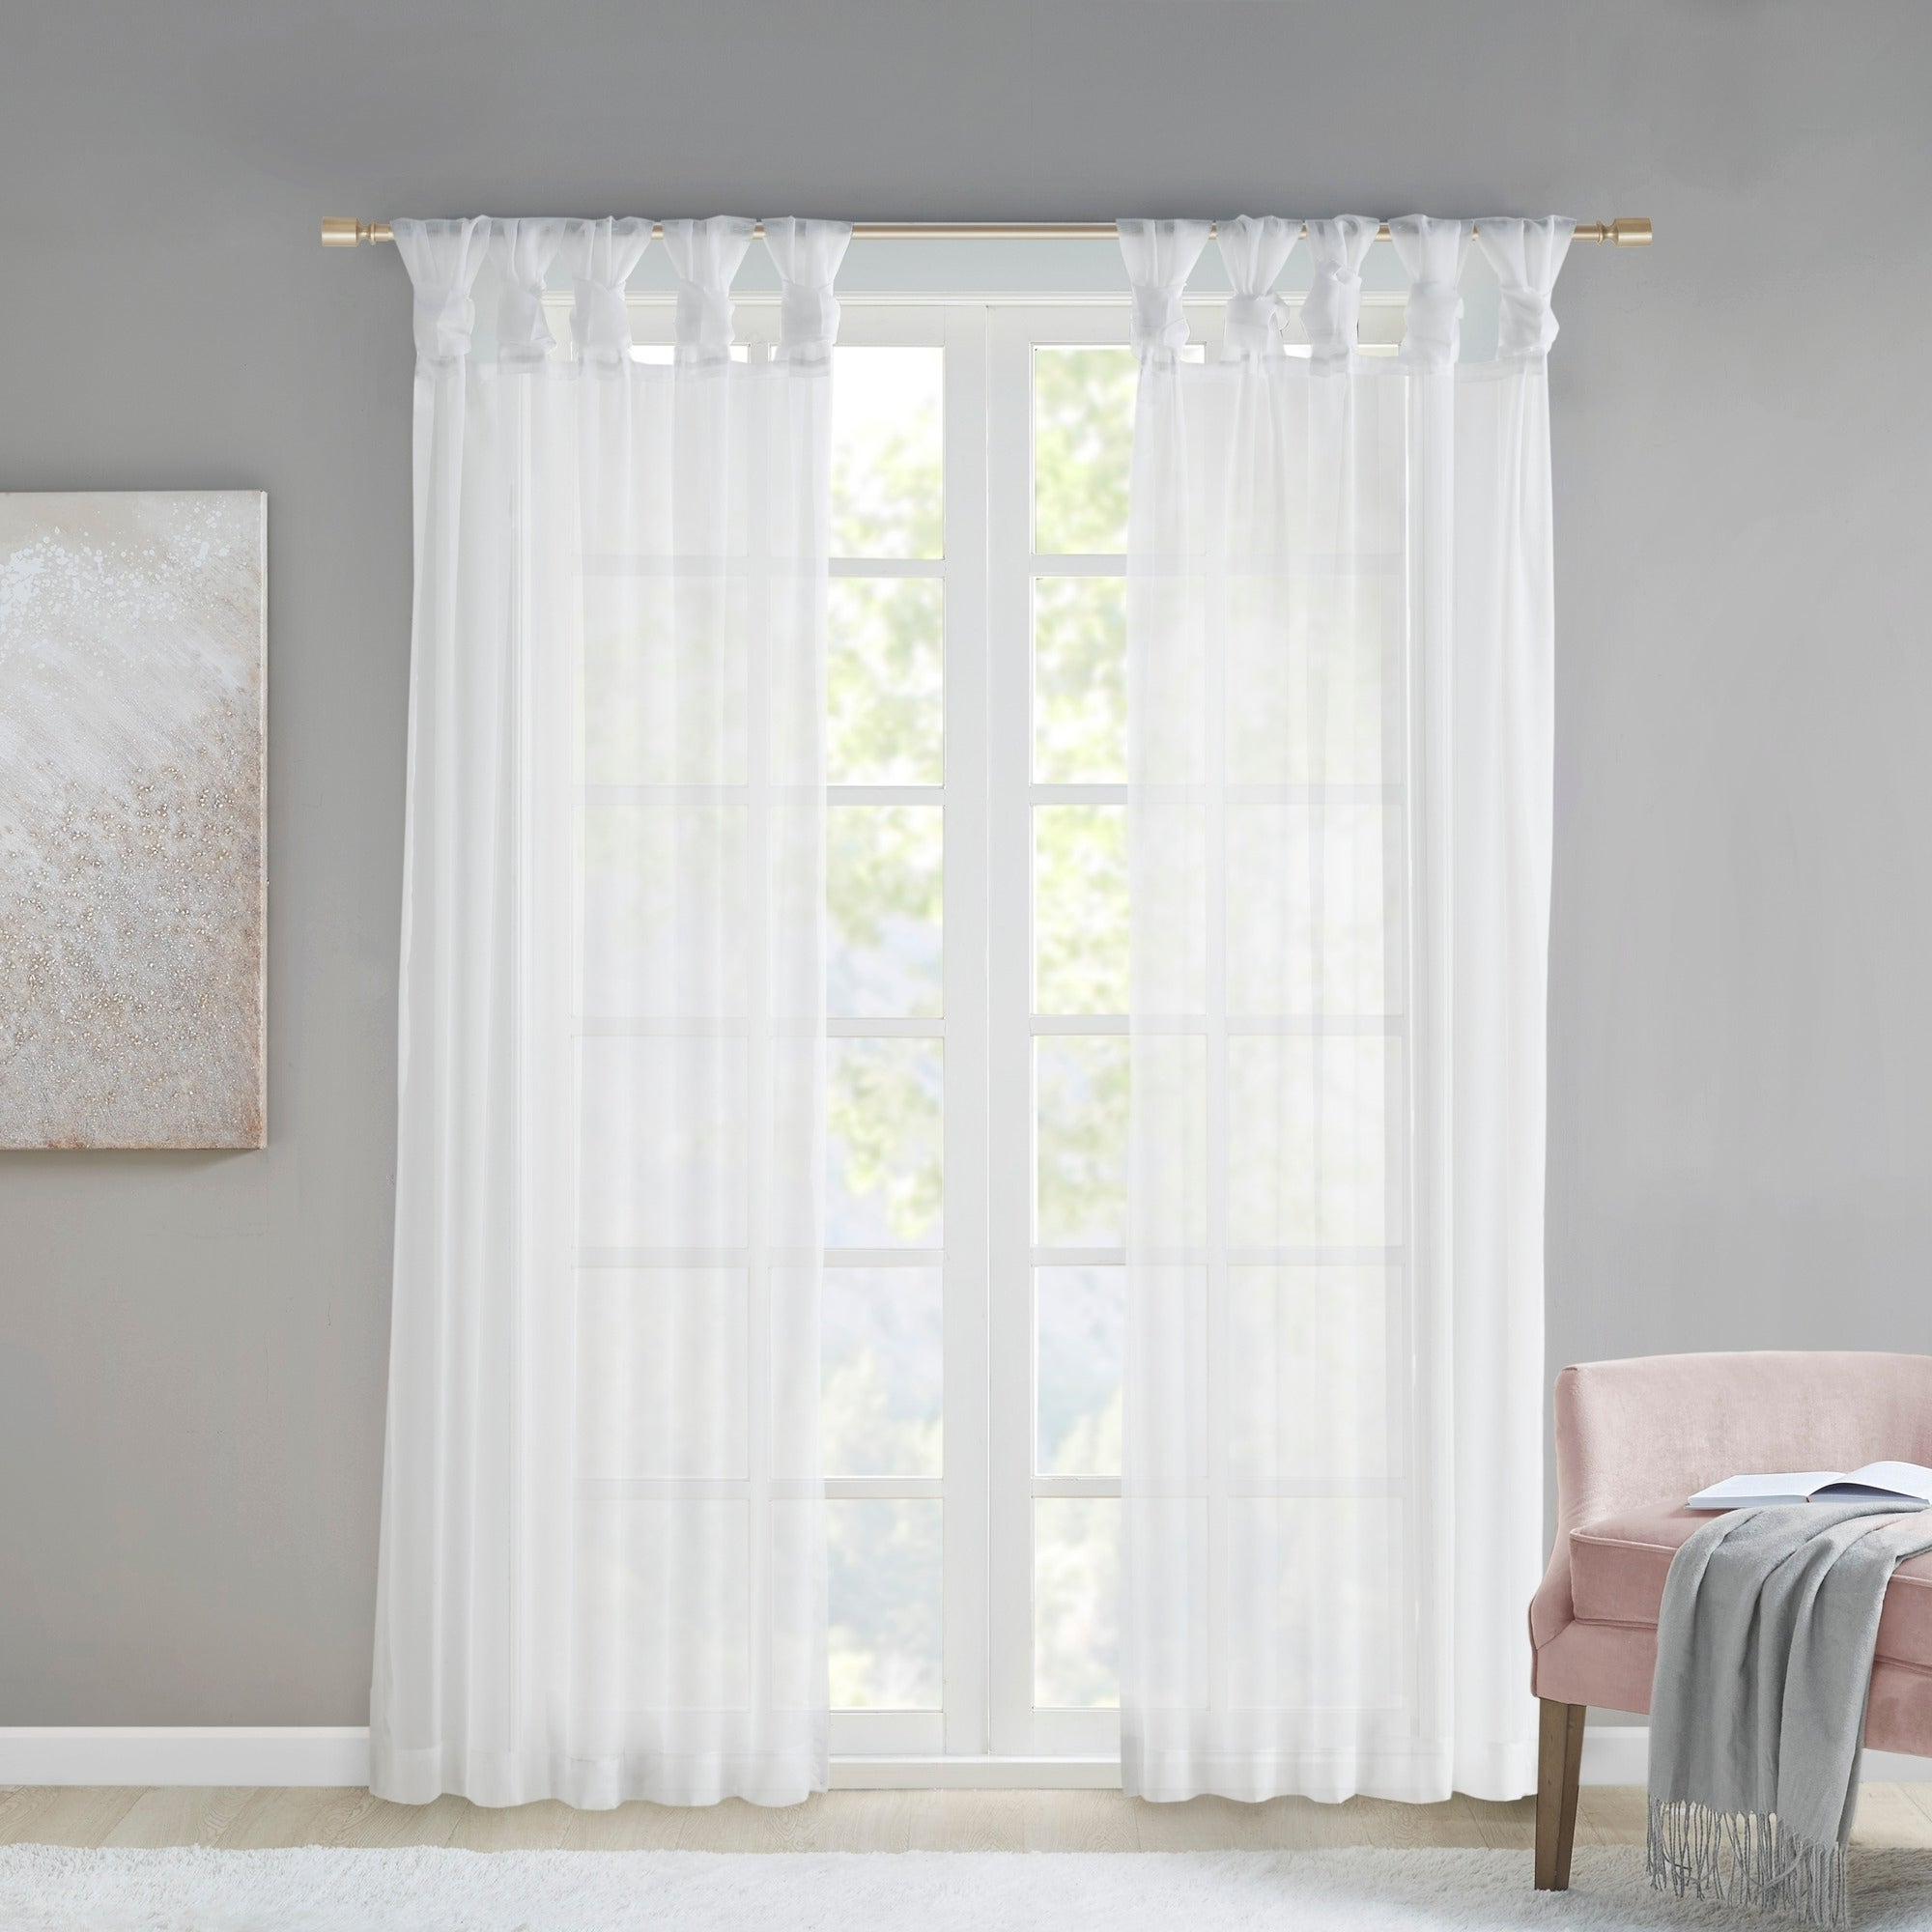 Well Known Elowen White Twist Tab Voile Sheer Curtain Panel Pairs For Madison Park Elowen White Twist Tab Voile Sheer Curtain Panel Pair (View 3 of 20)